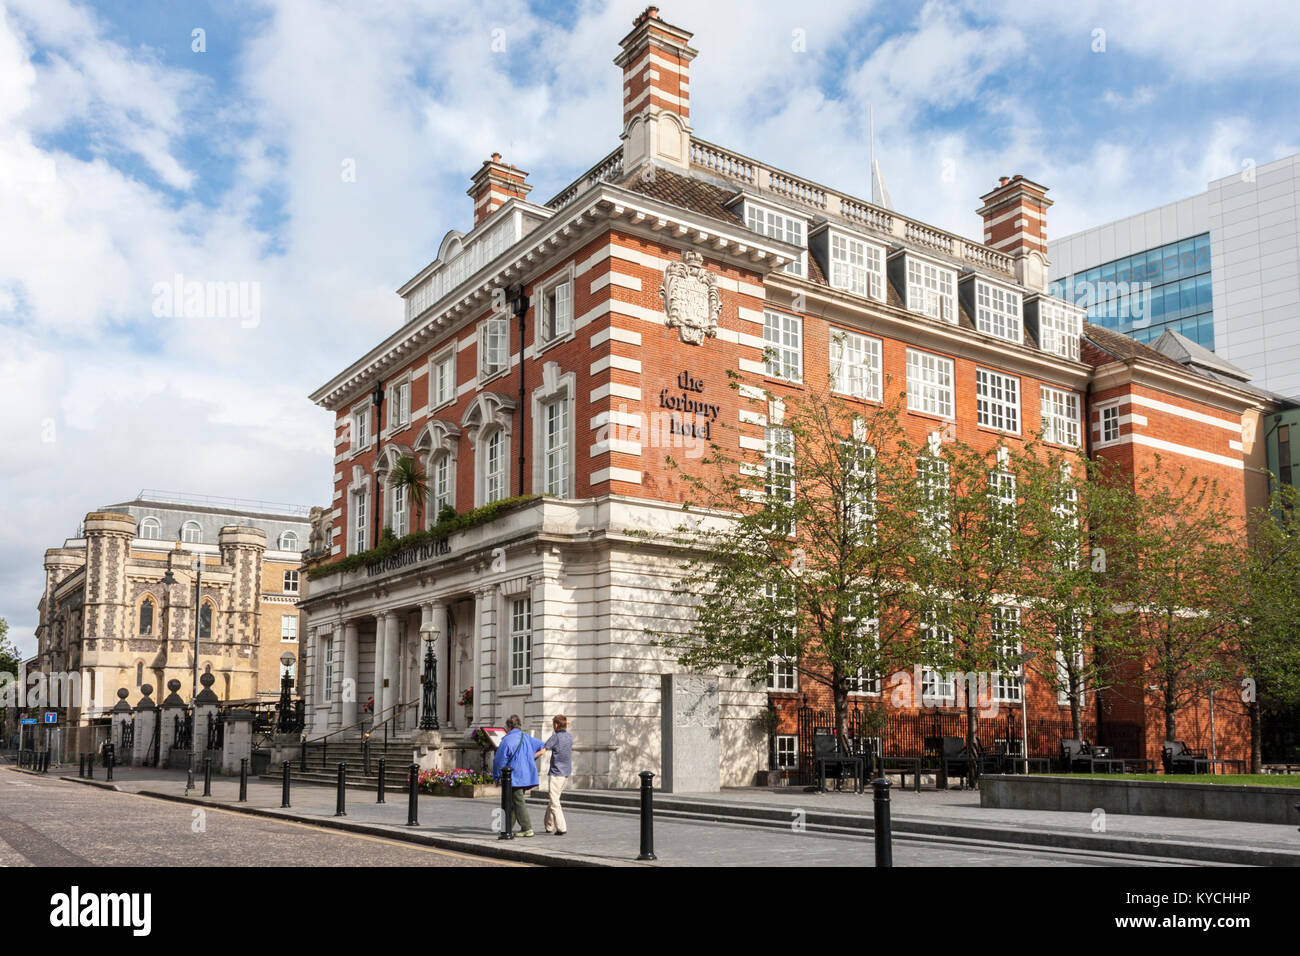 The Forbury Hotel, Reading, Berkshire, England, GB, UK - Stock Image